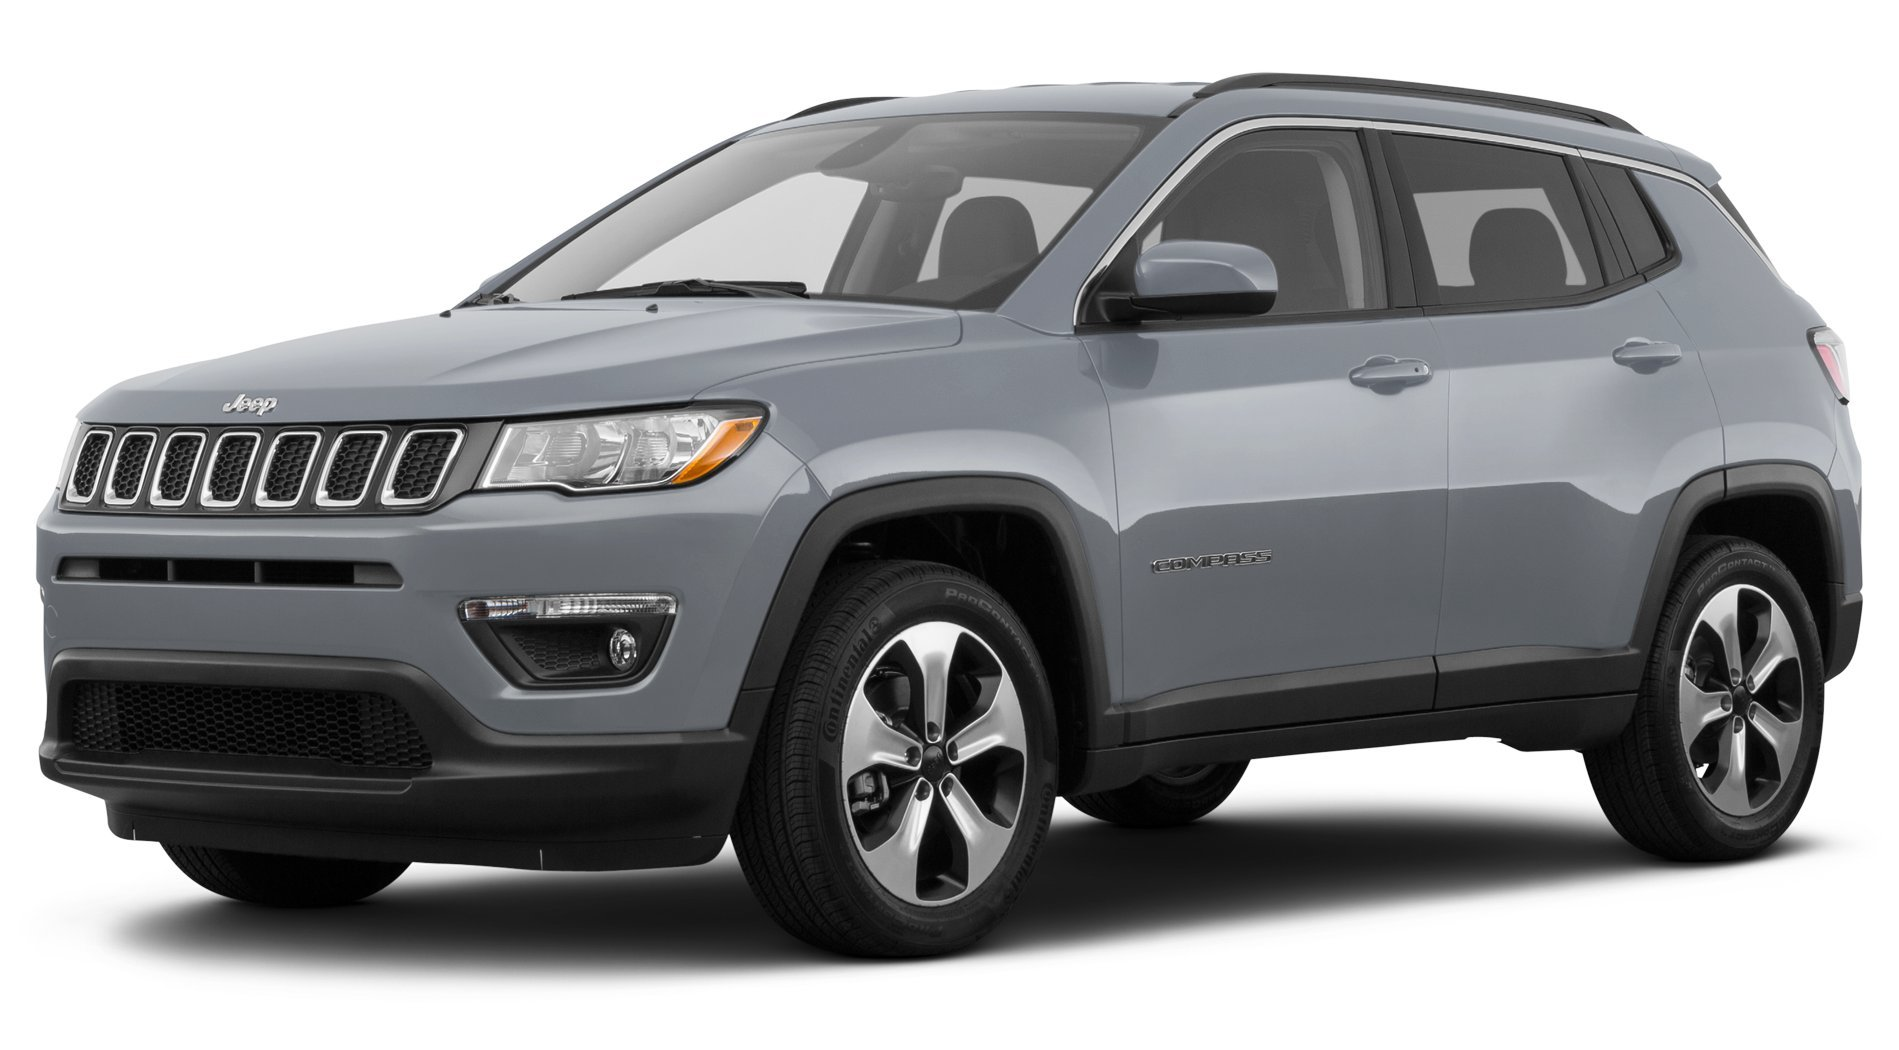 Amazon.com: 2018 Jeep Compass Altitude Reviews, Images, and Specs: Vehicles